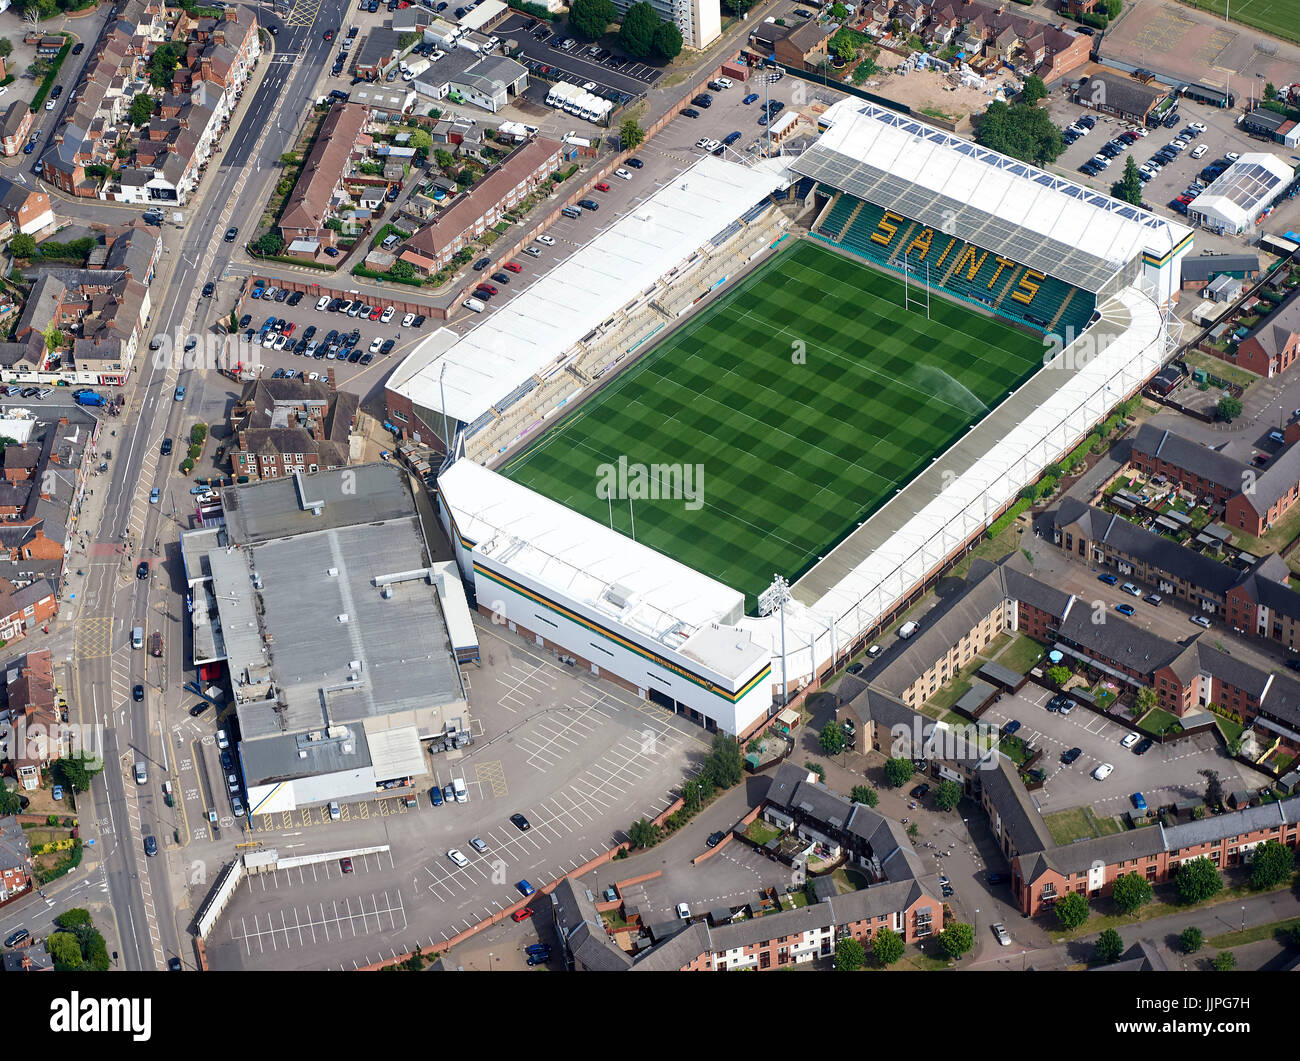 An aerial view of Northampton Saints Rugby Ground, Franklin's Gardens, Northamptonshire, UK